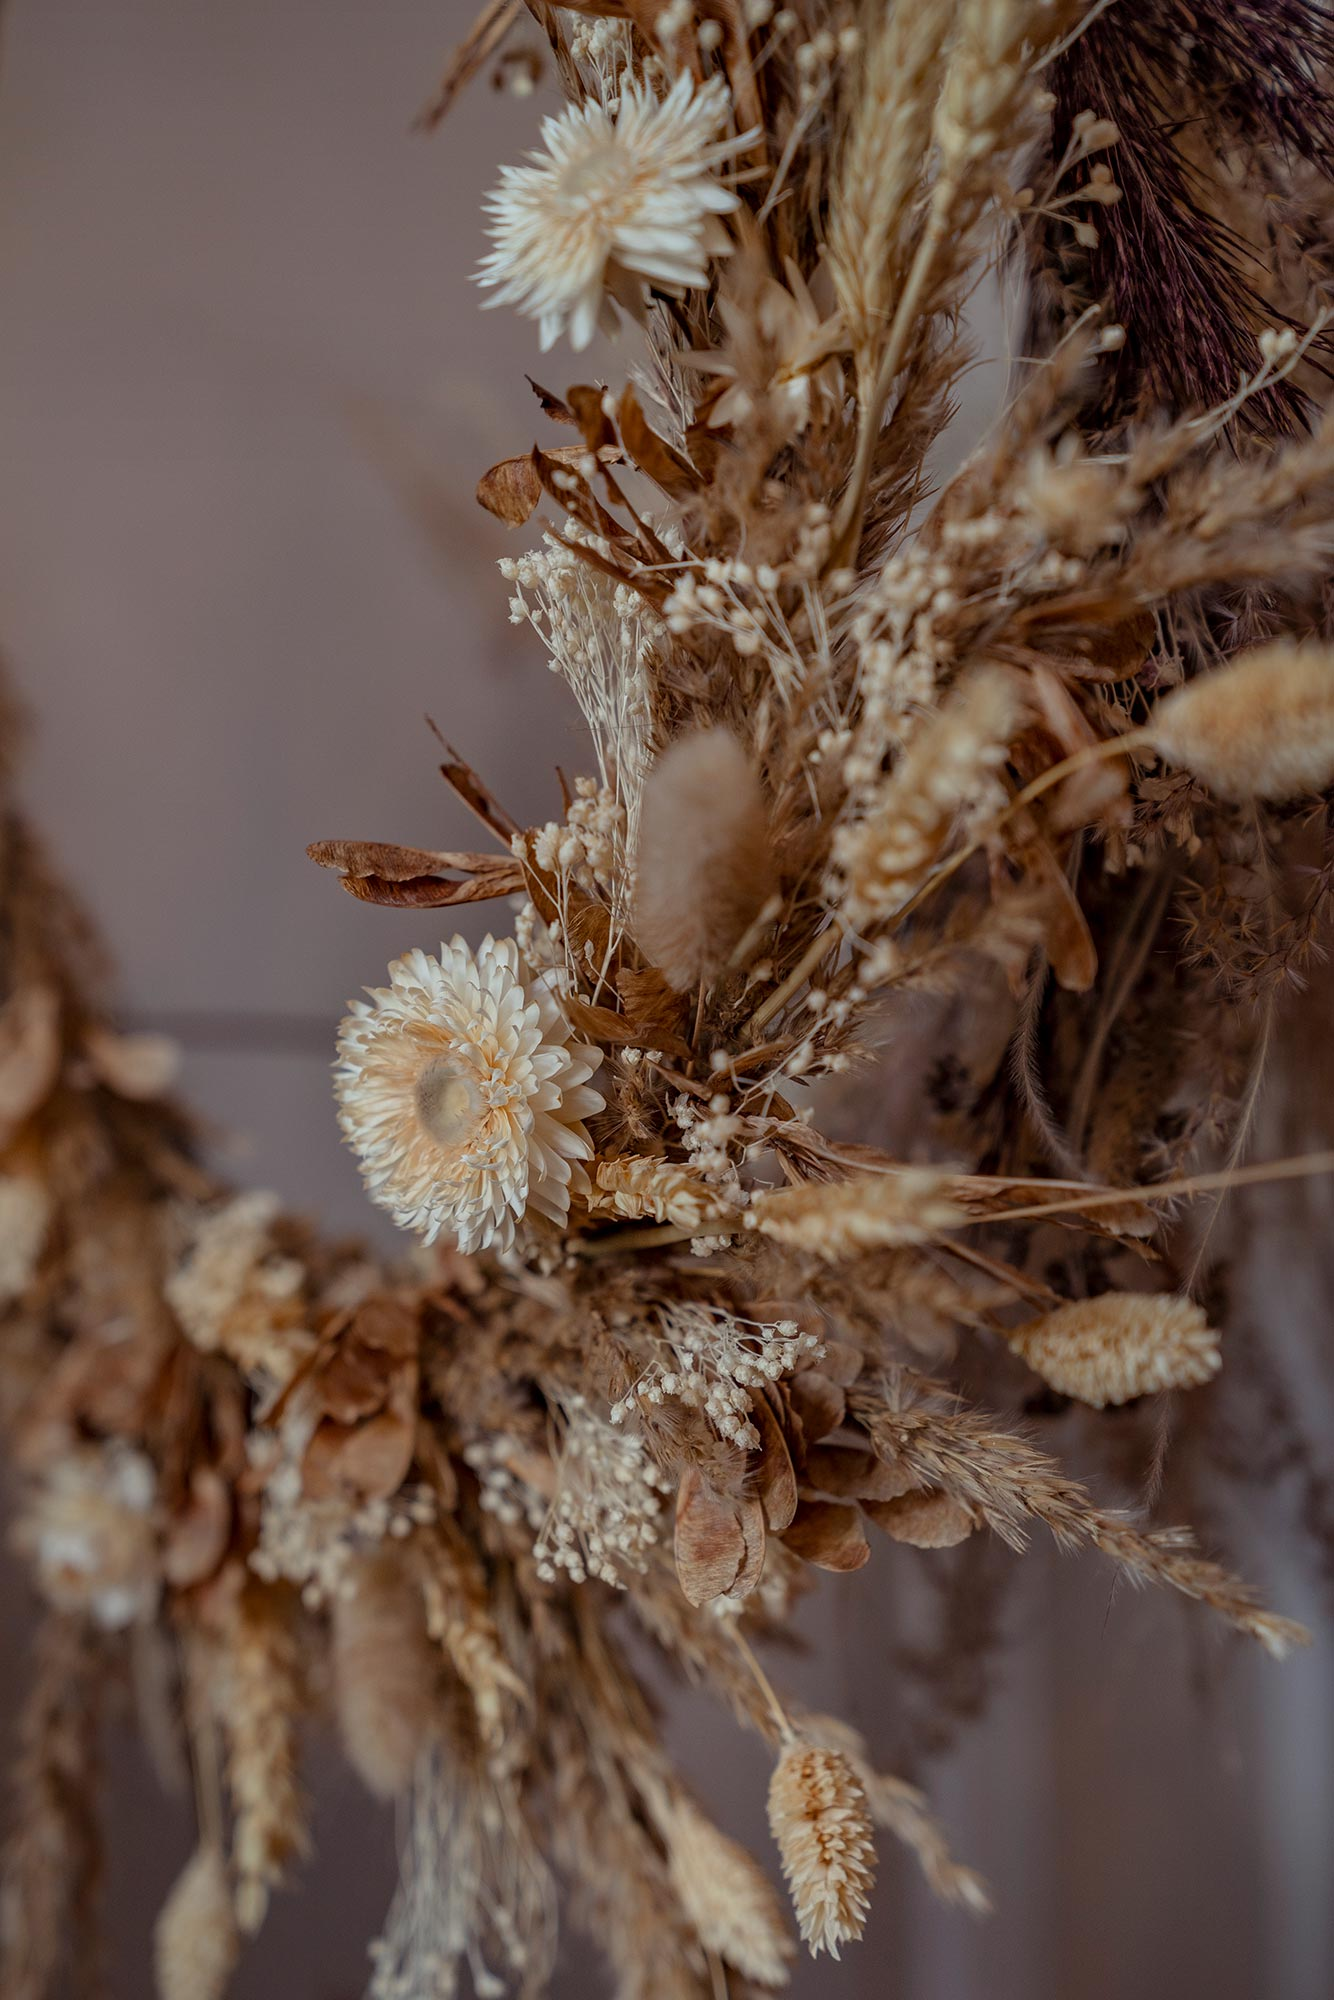 Blossom dried flower studio in Berlin